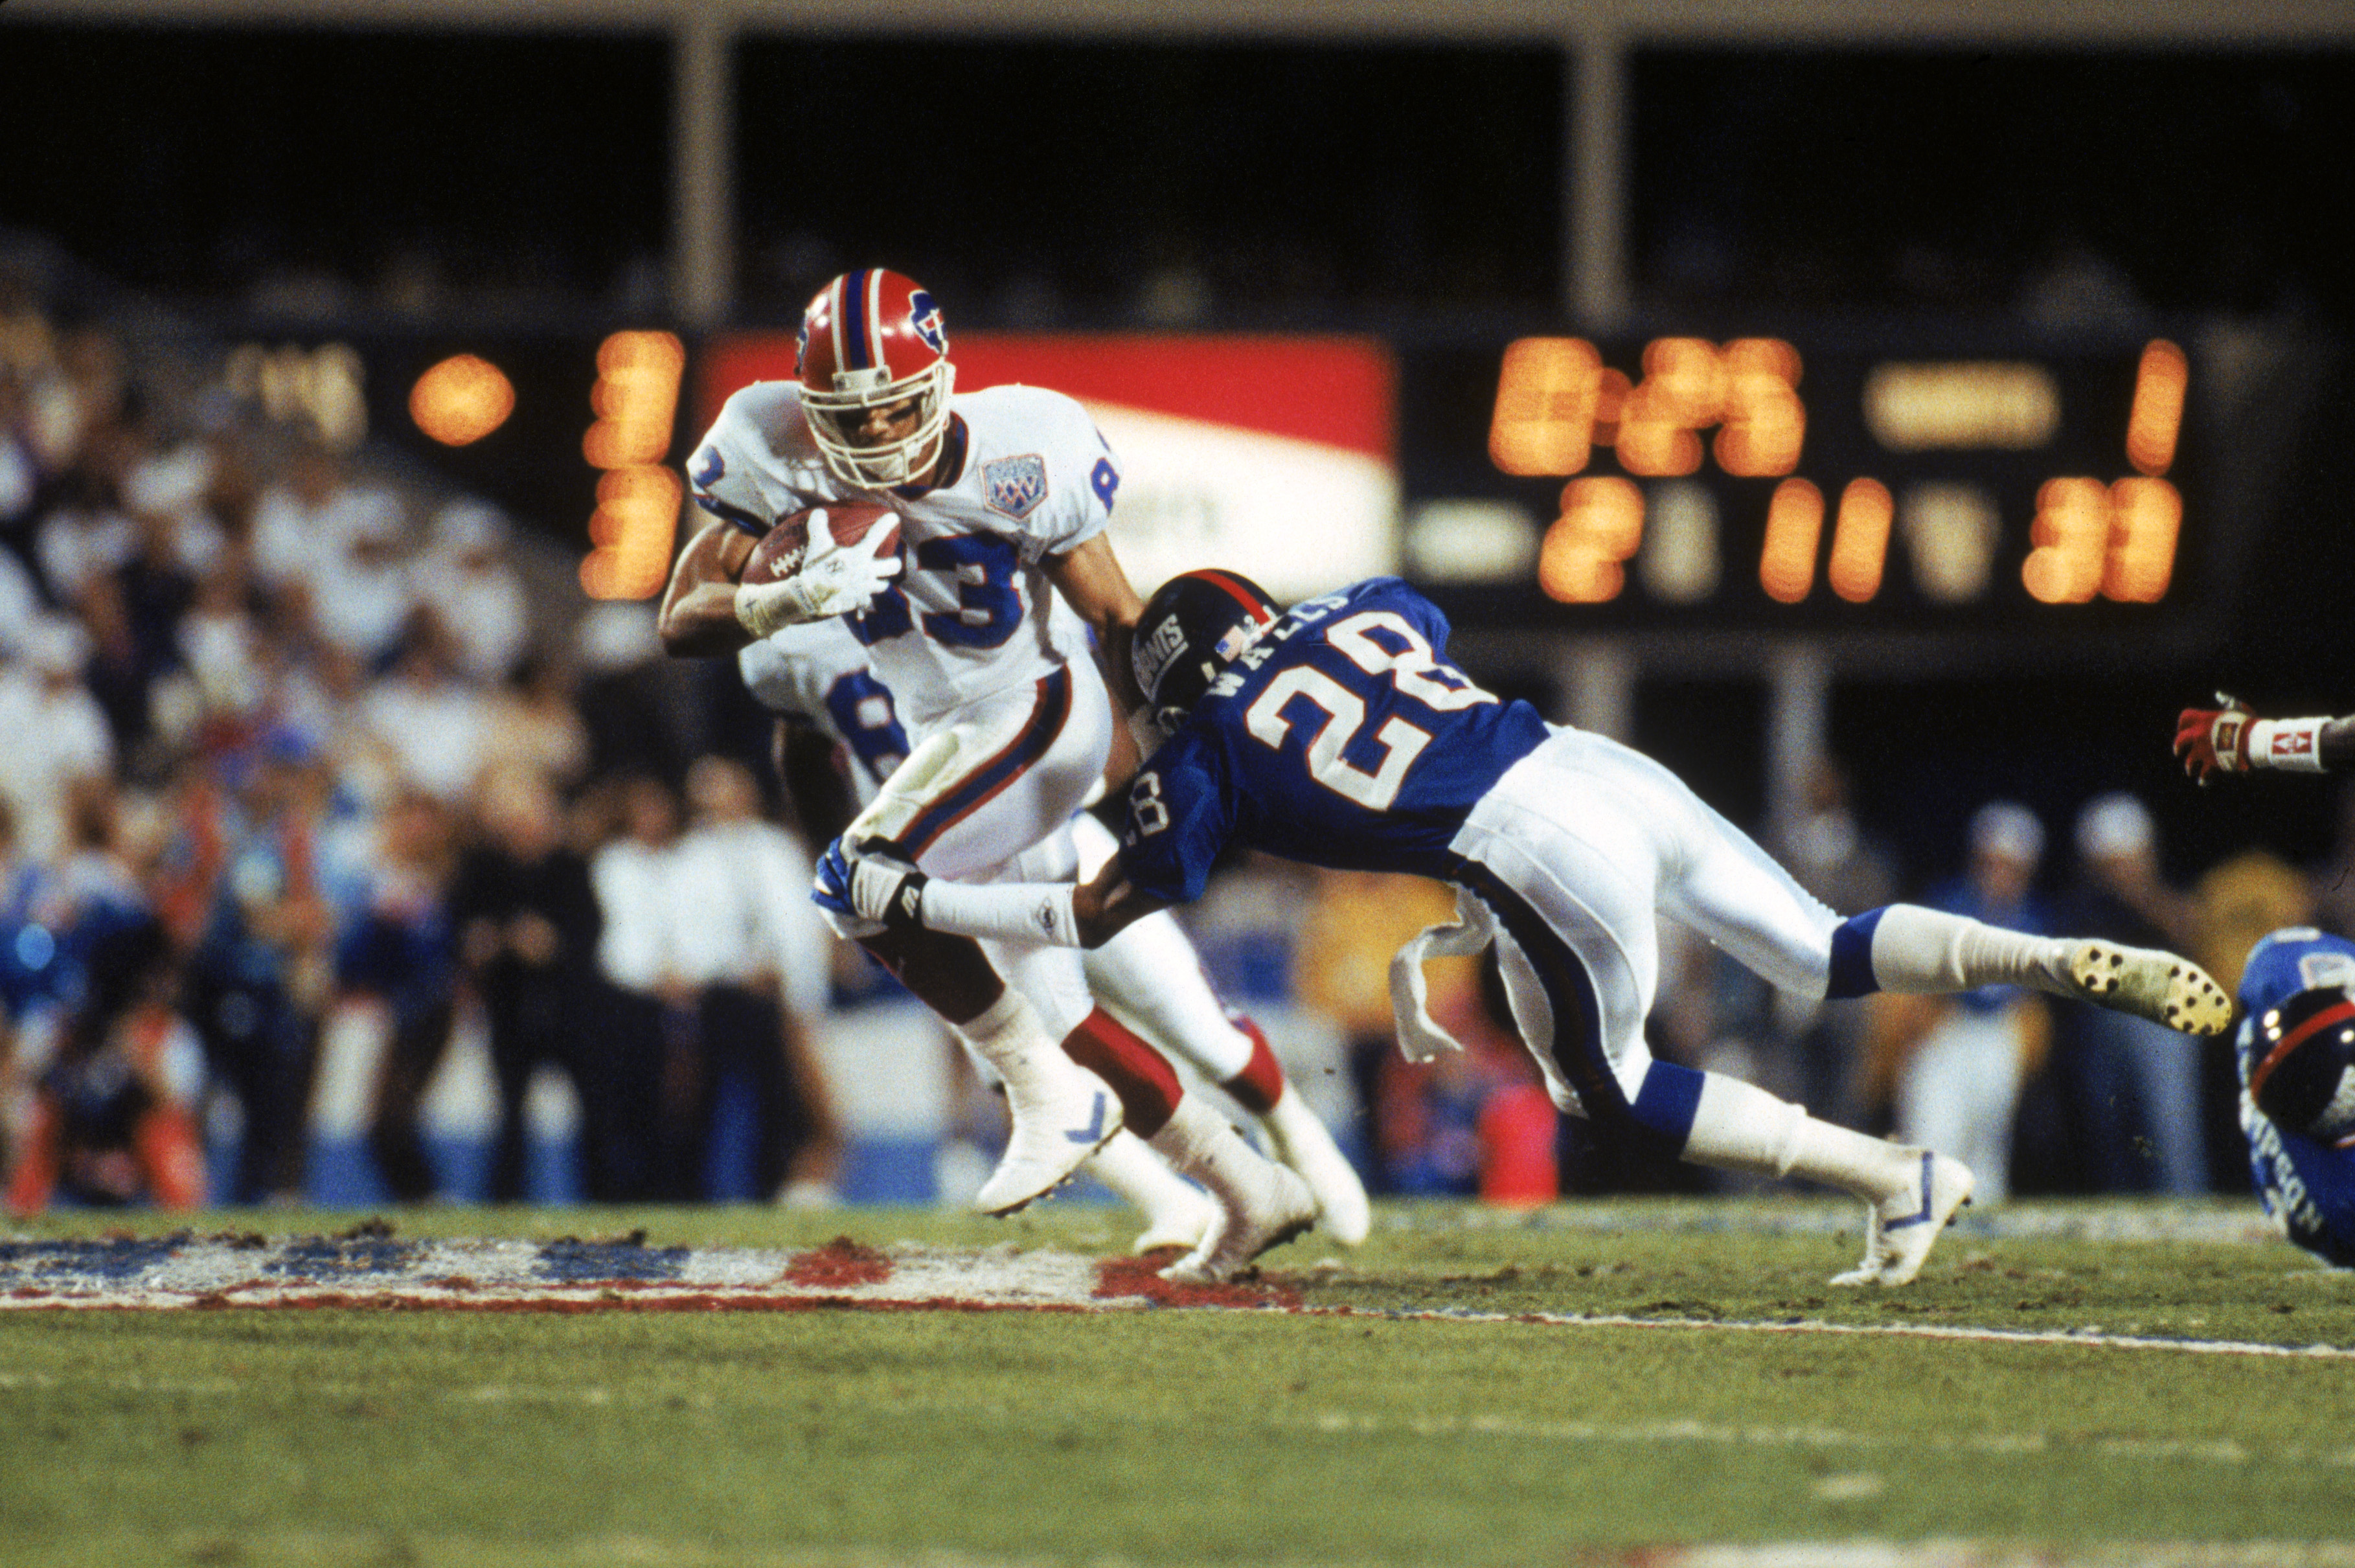 TAMPA, FL - JANUARY 27:  Wide receiver Andre Reed #83 of the Buffalo Bills tries to break away from a tackle by cornerback Everson Walls #28 of the New York Giants on a twenty yard pass in Super Bowl XXV at Tampa Stadium on January 27, 1991 in Tampa, Flor